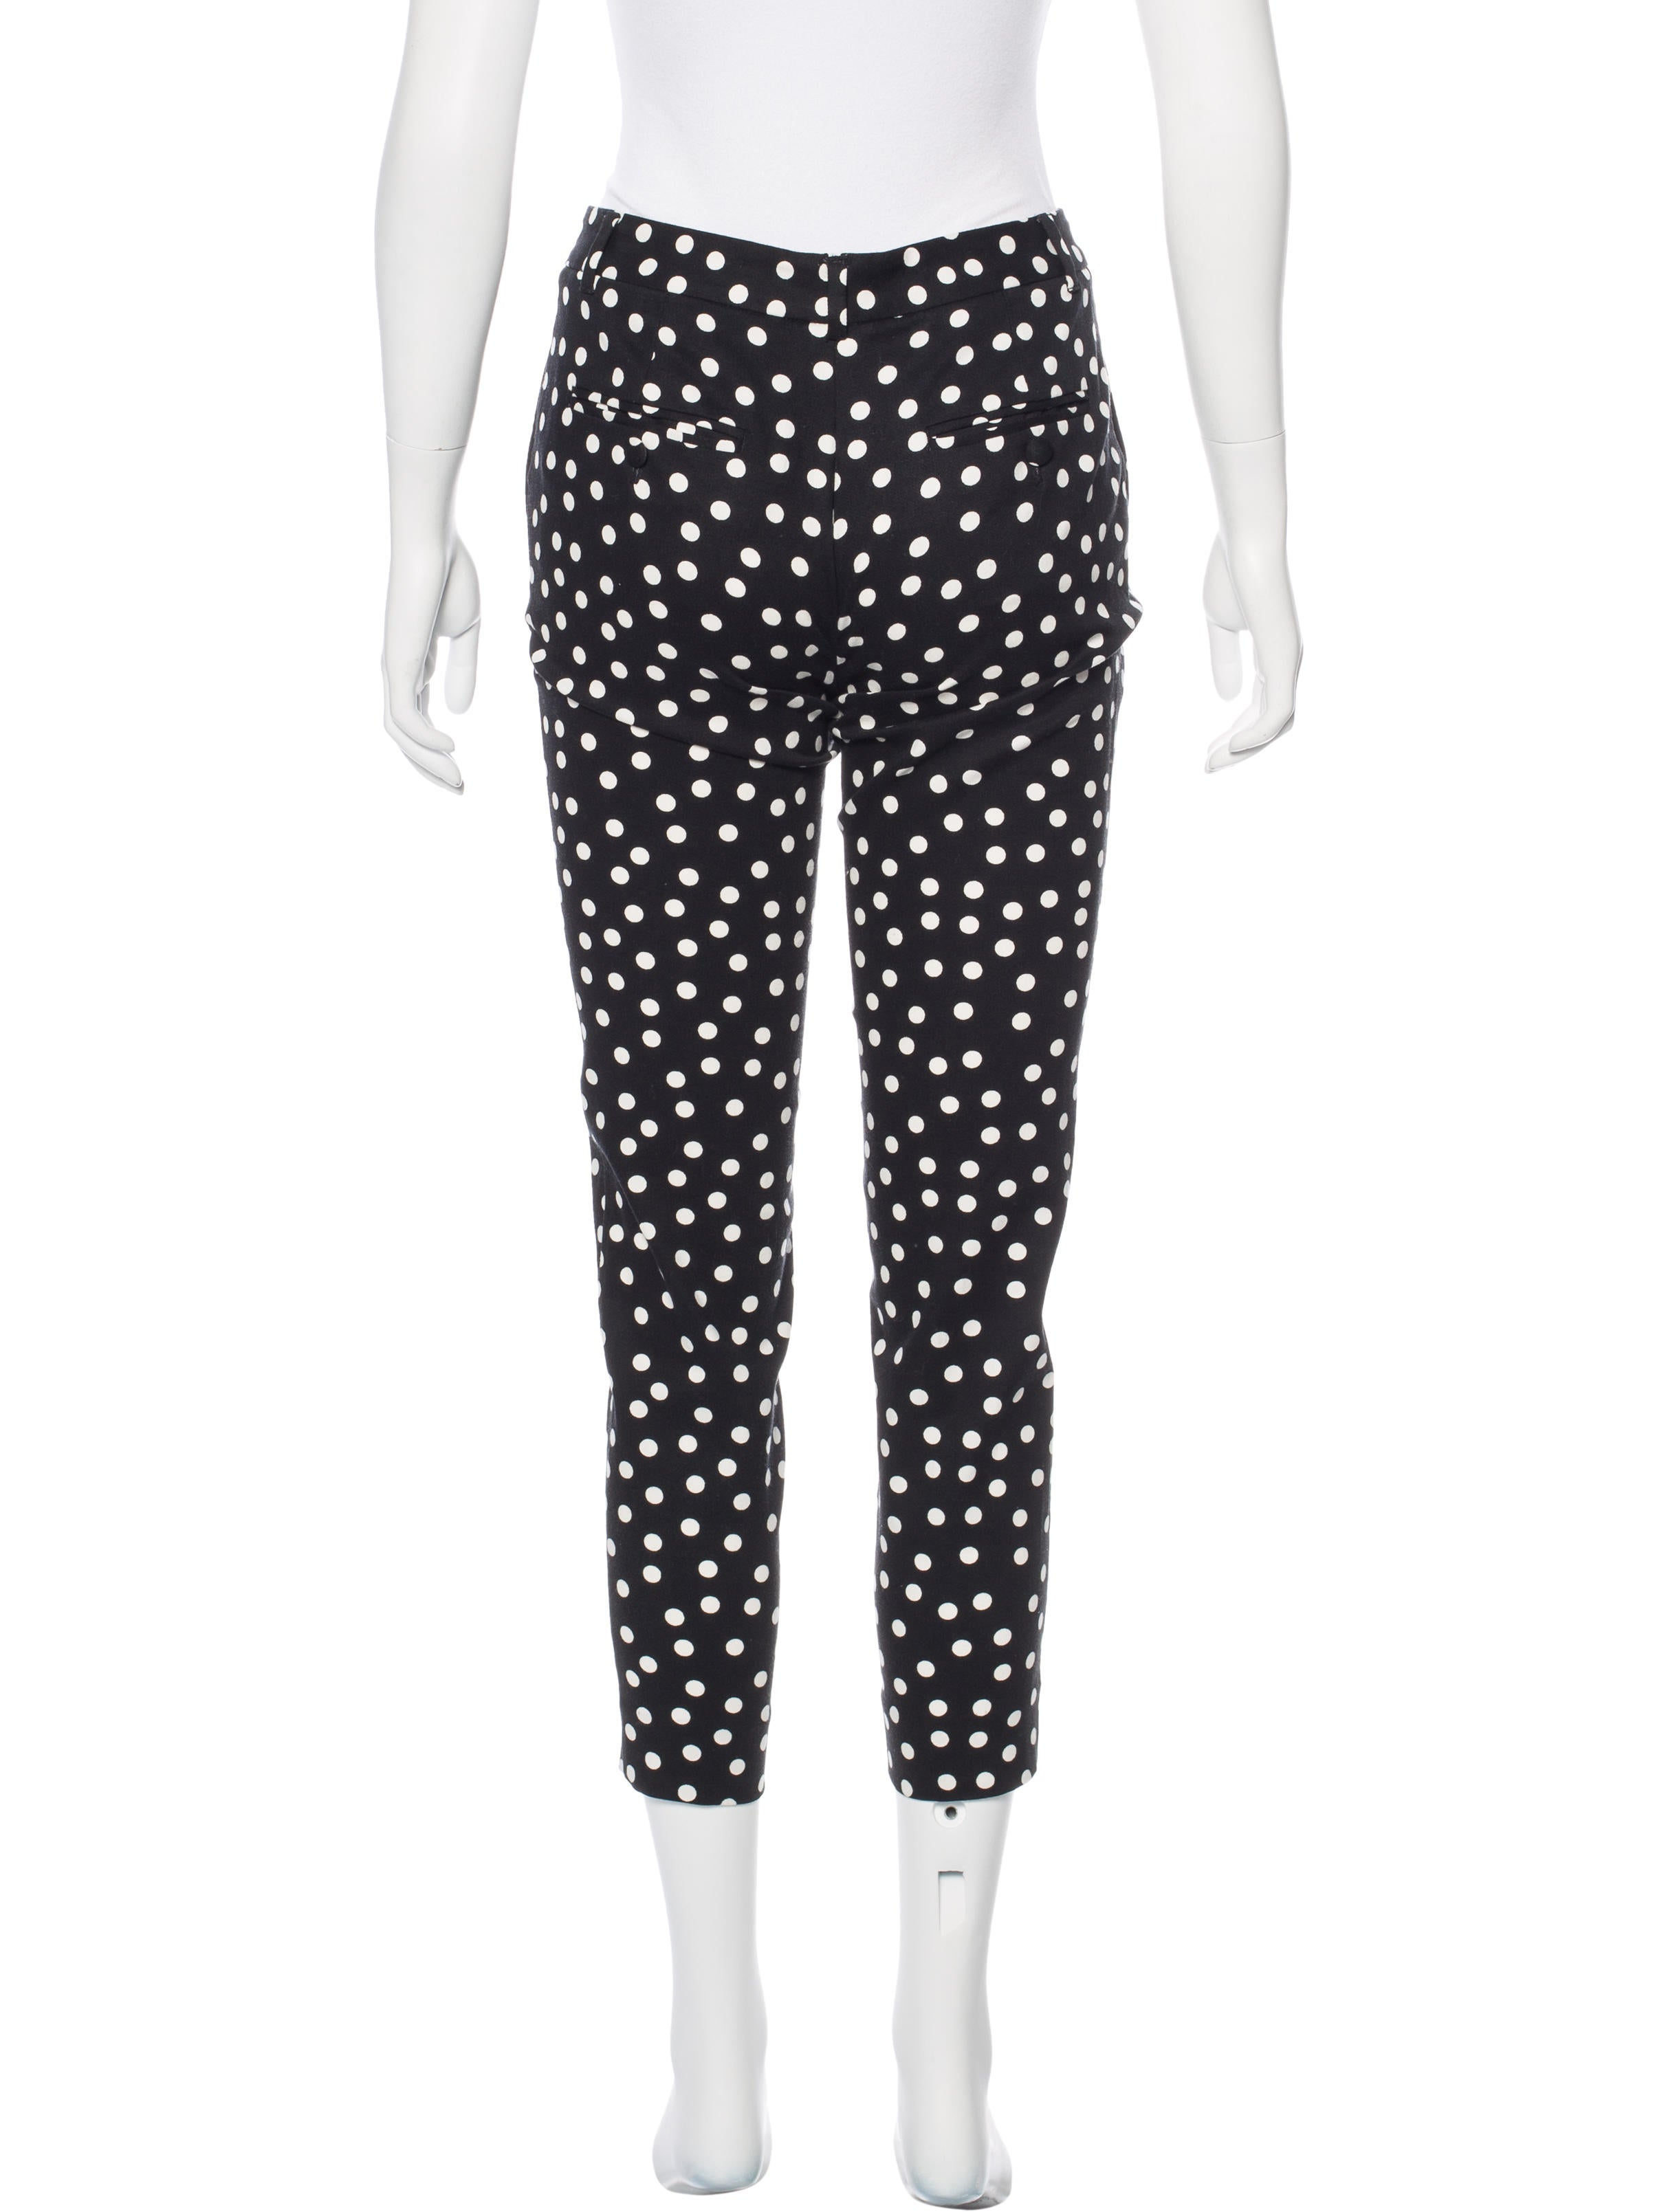 Click here to find out about the Tall Polka Dot Wide Leg Trousers from Boohoo, part of our latest Wide Leg Pants collection ready to shop online today!